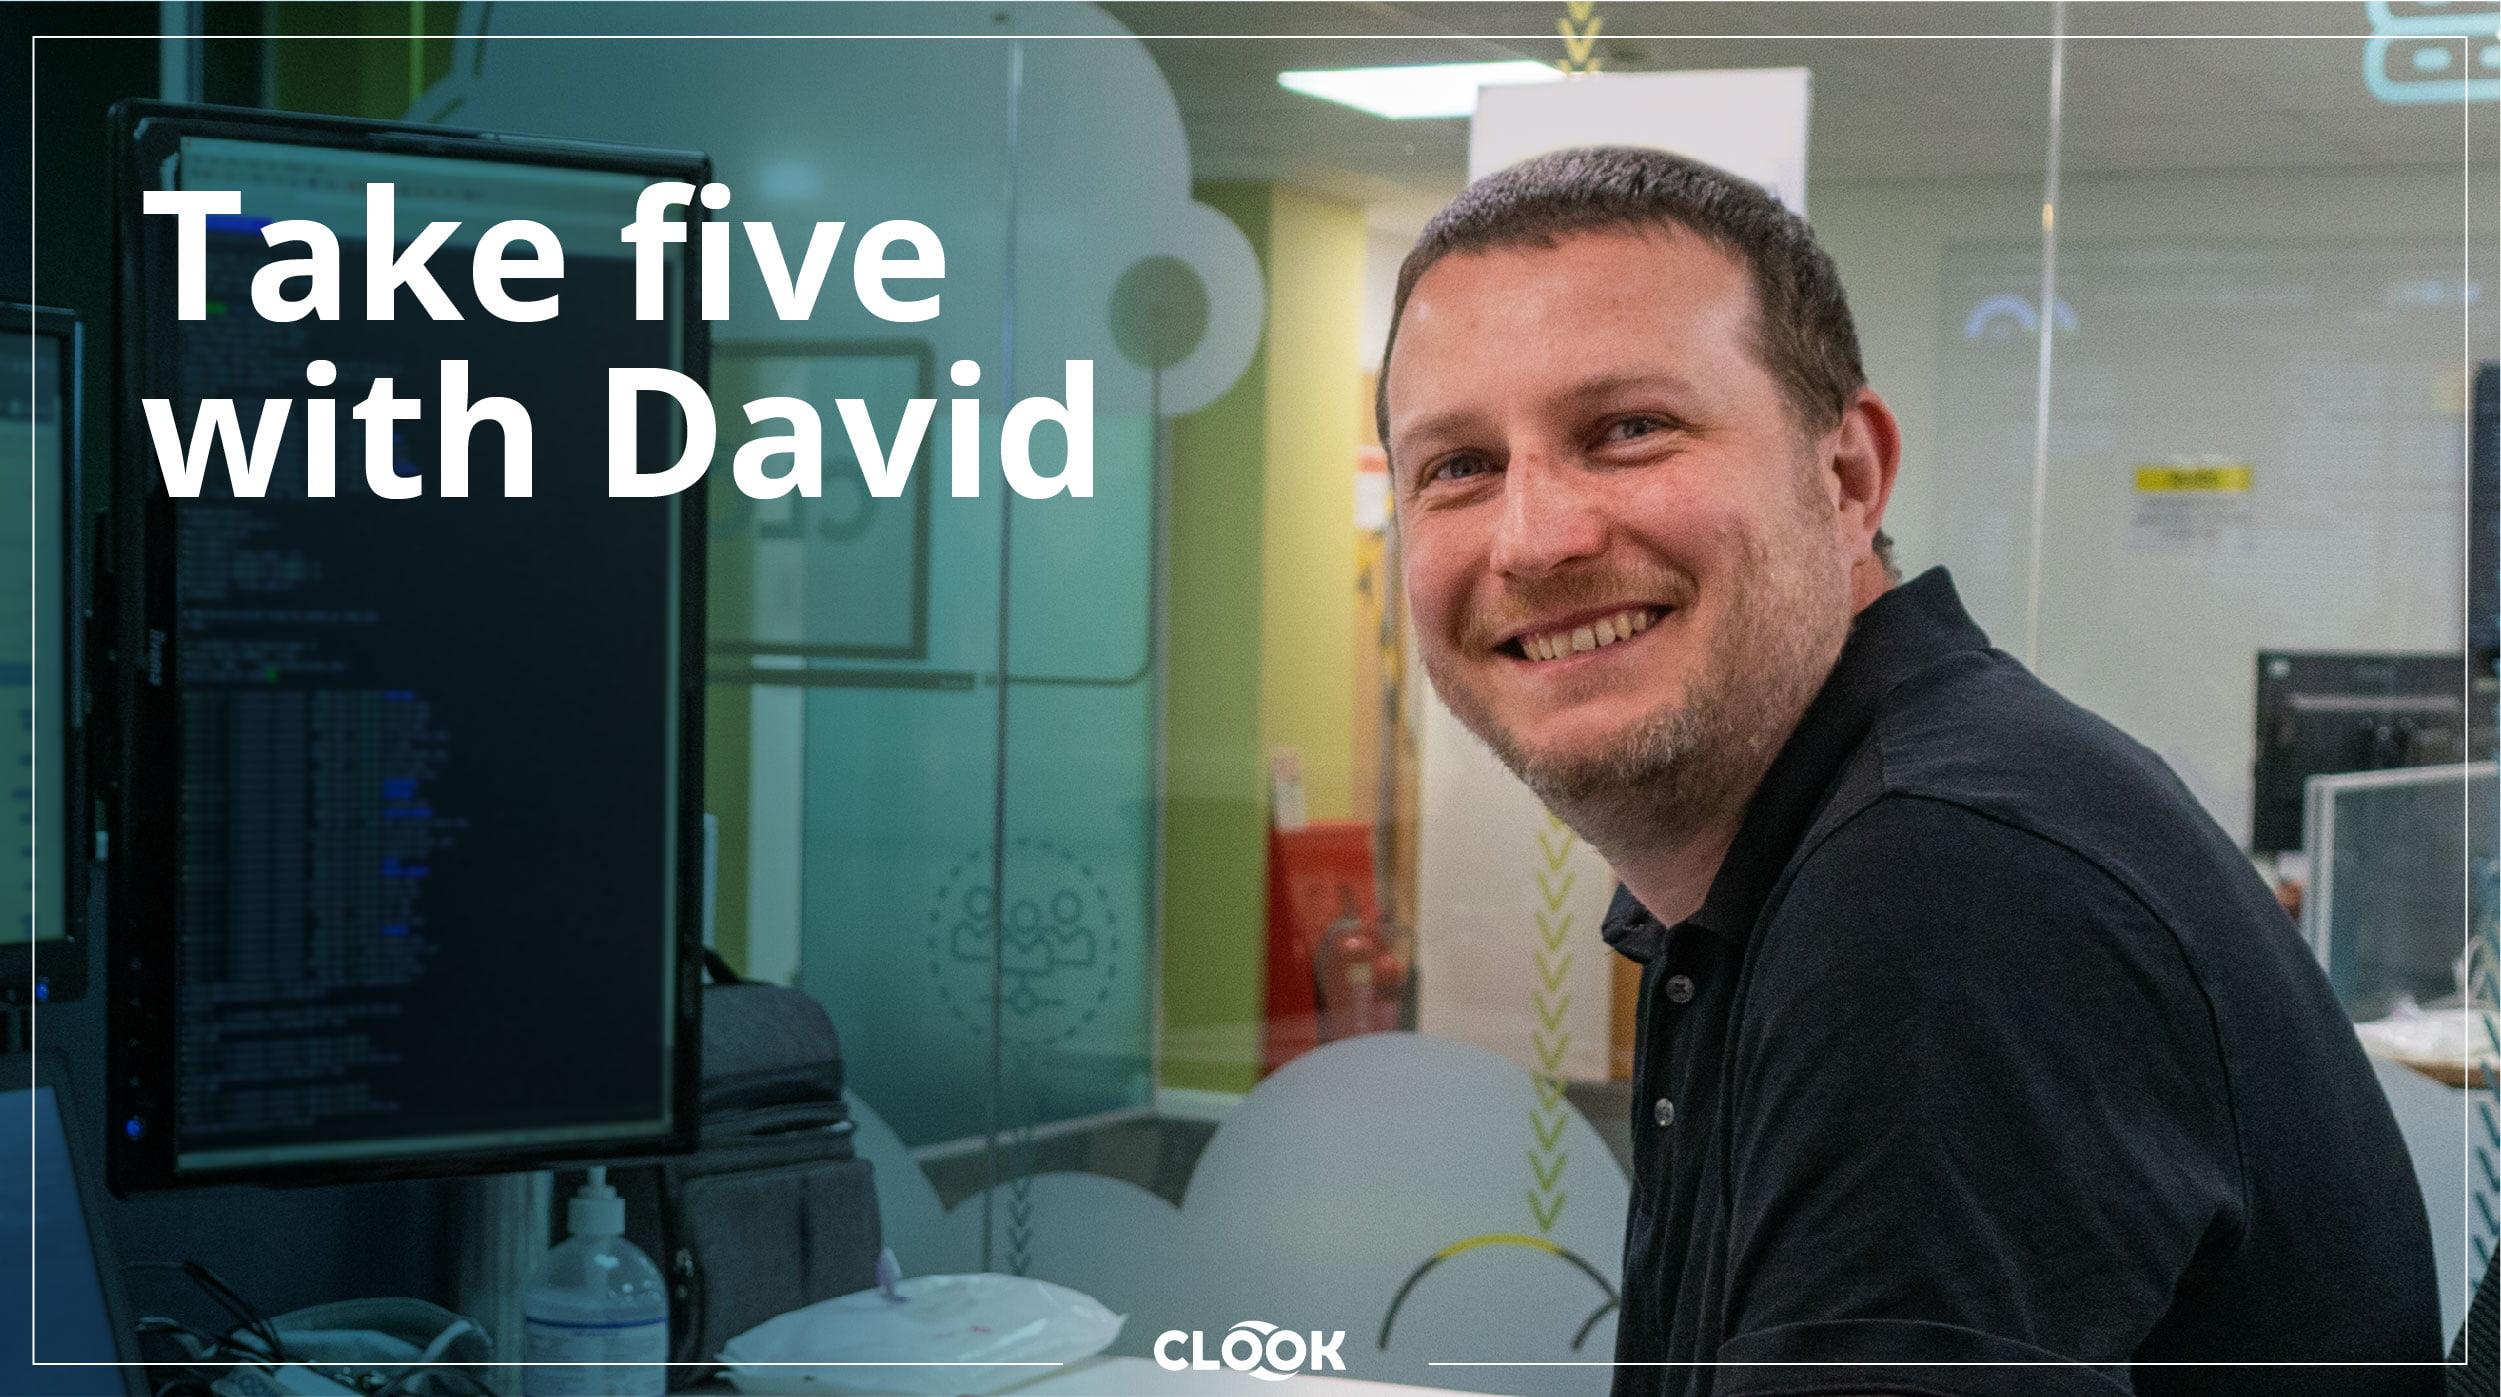 Take five with our team member David